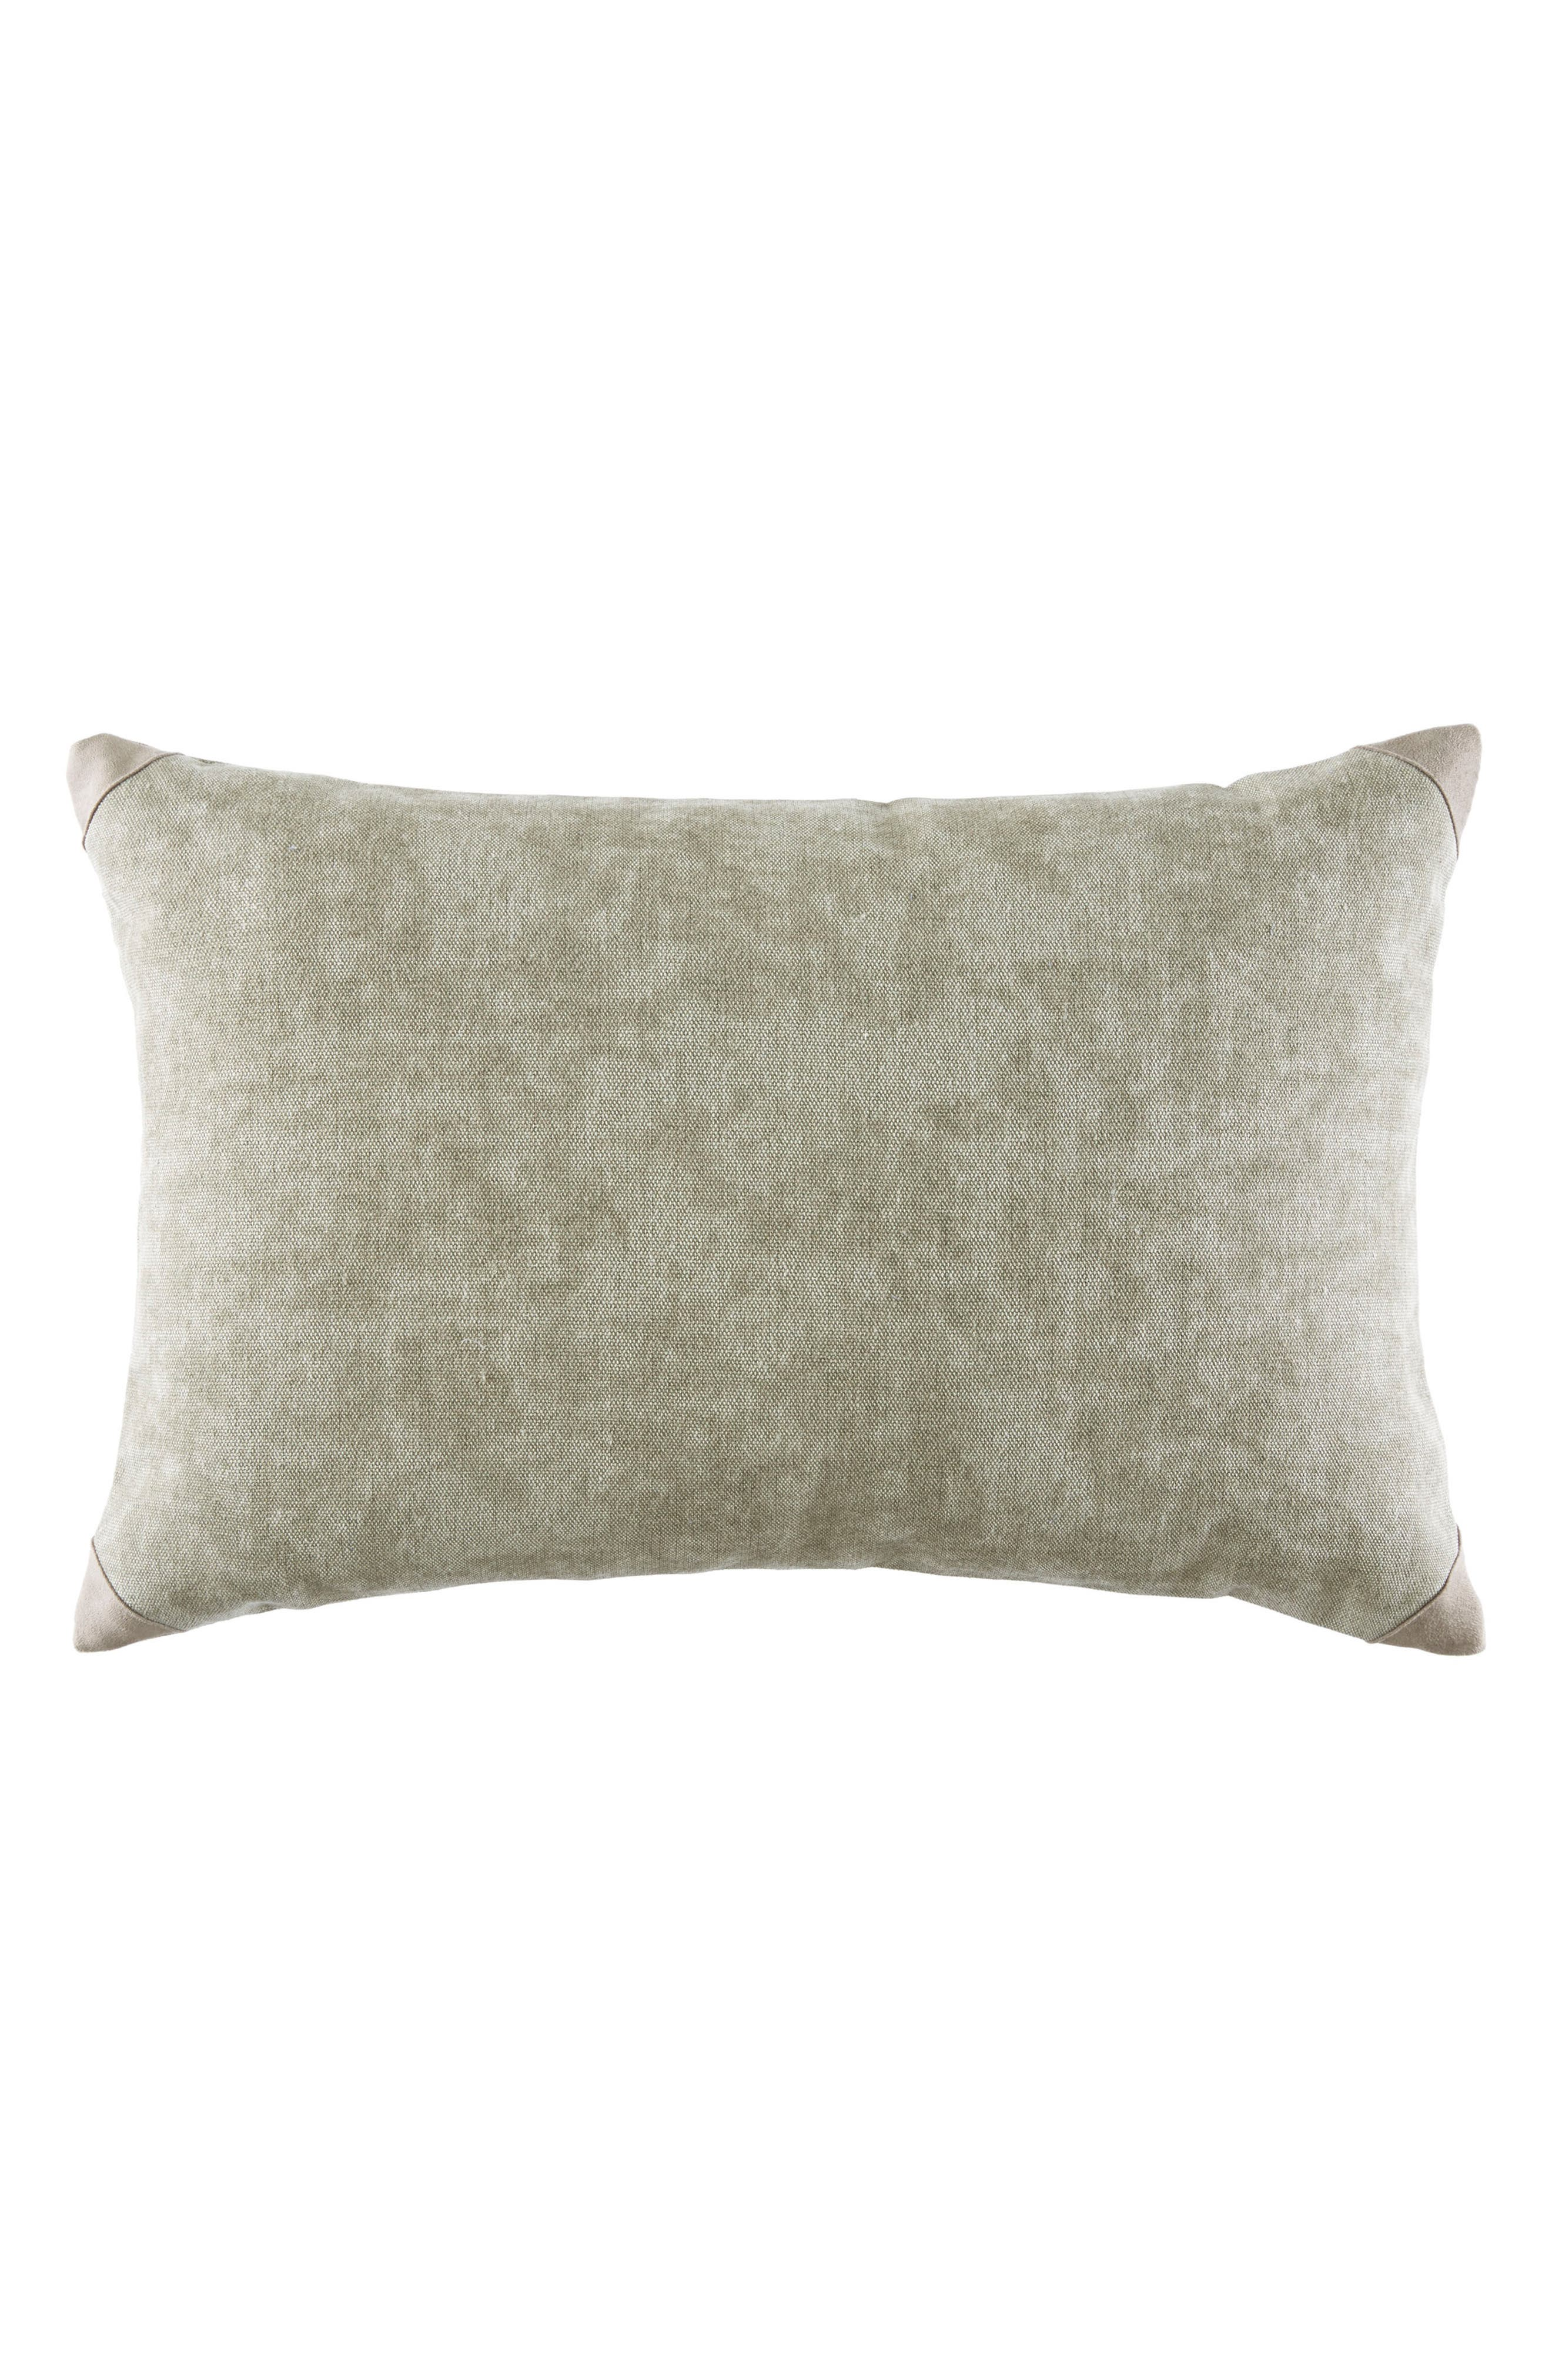 Alternate Image 1 Selected - Tommy Hilfiger Elbow Patch Accent Pillow